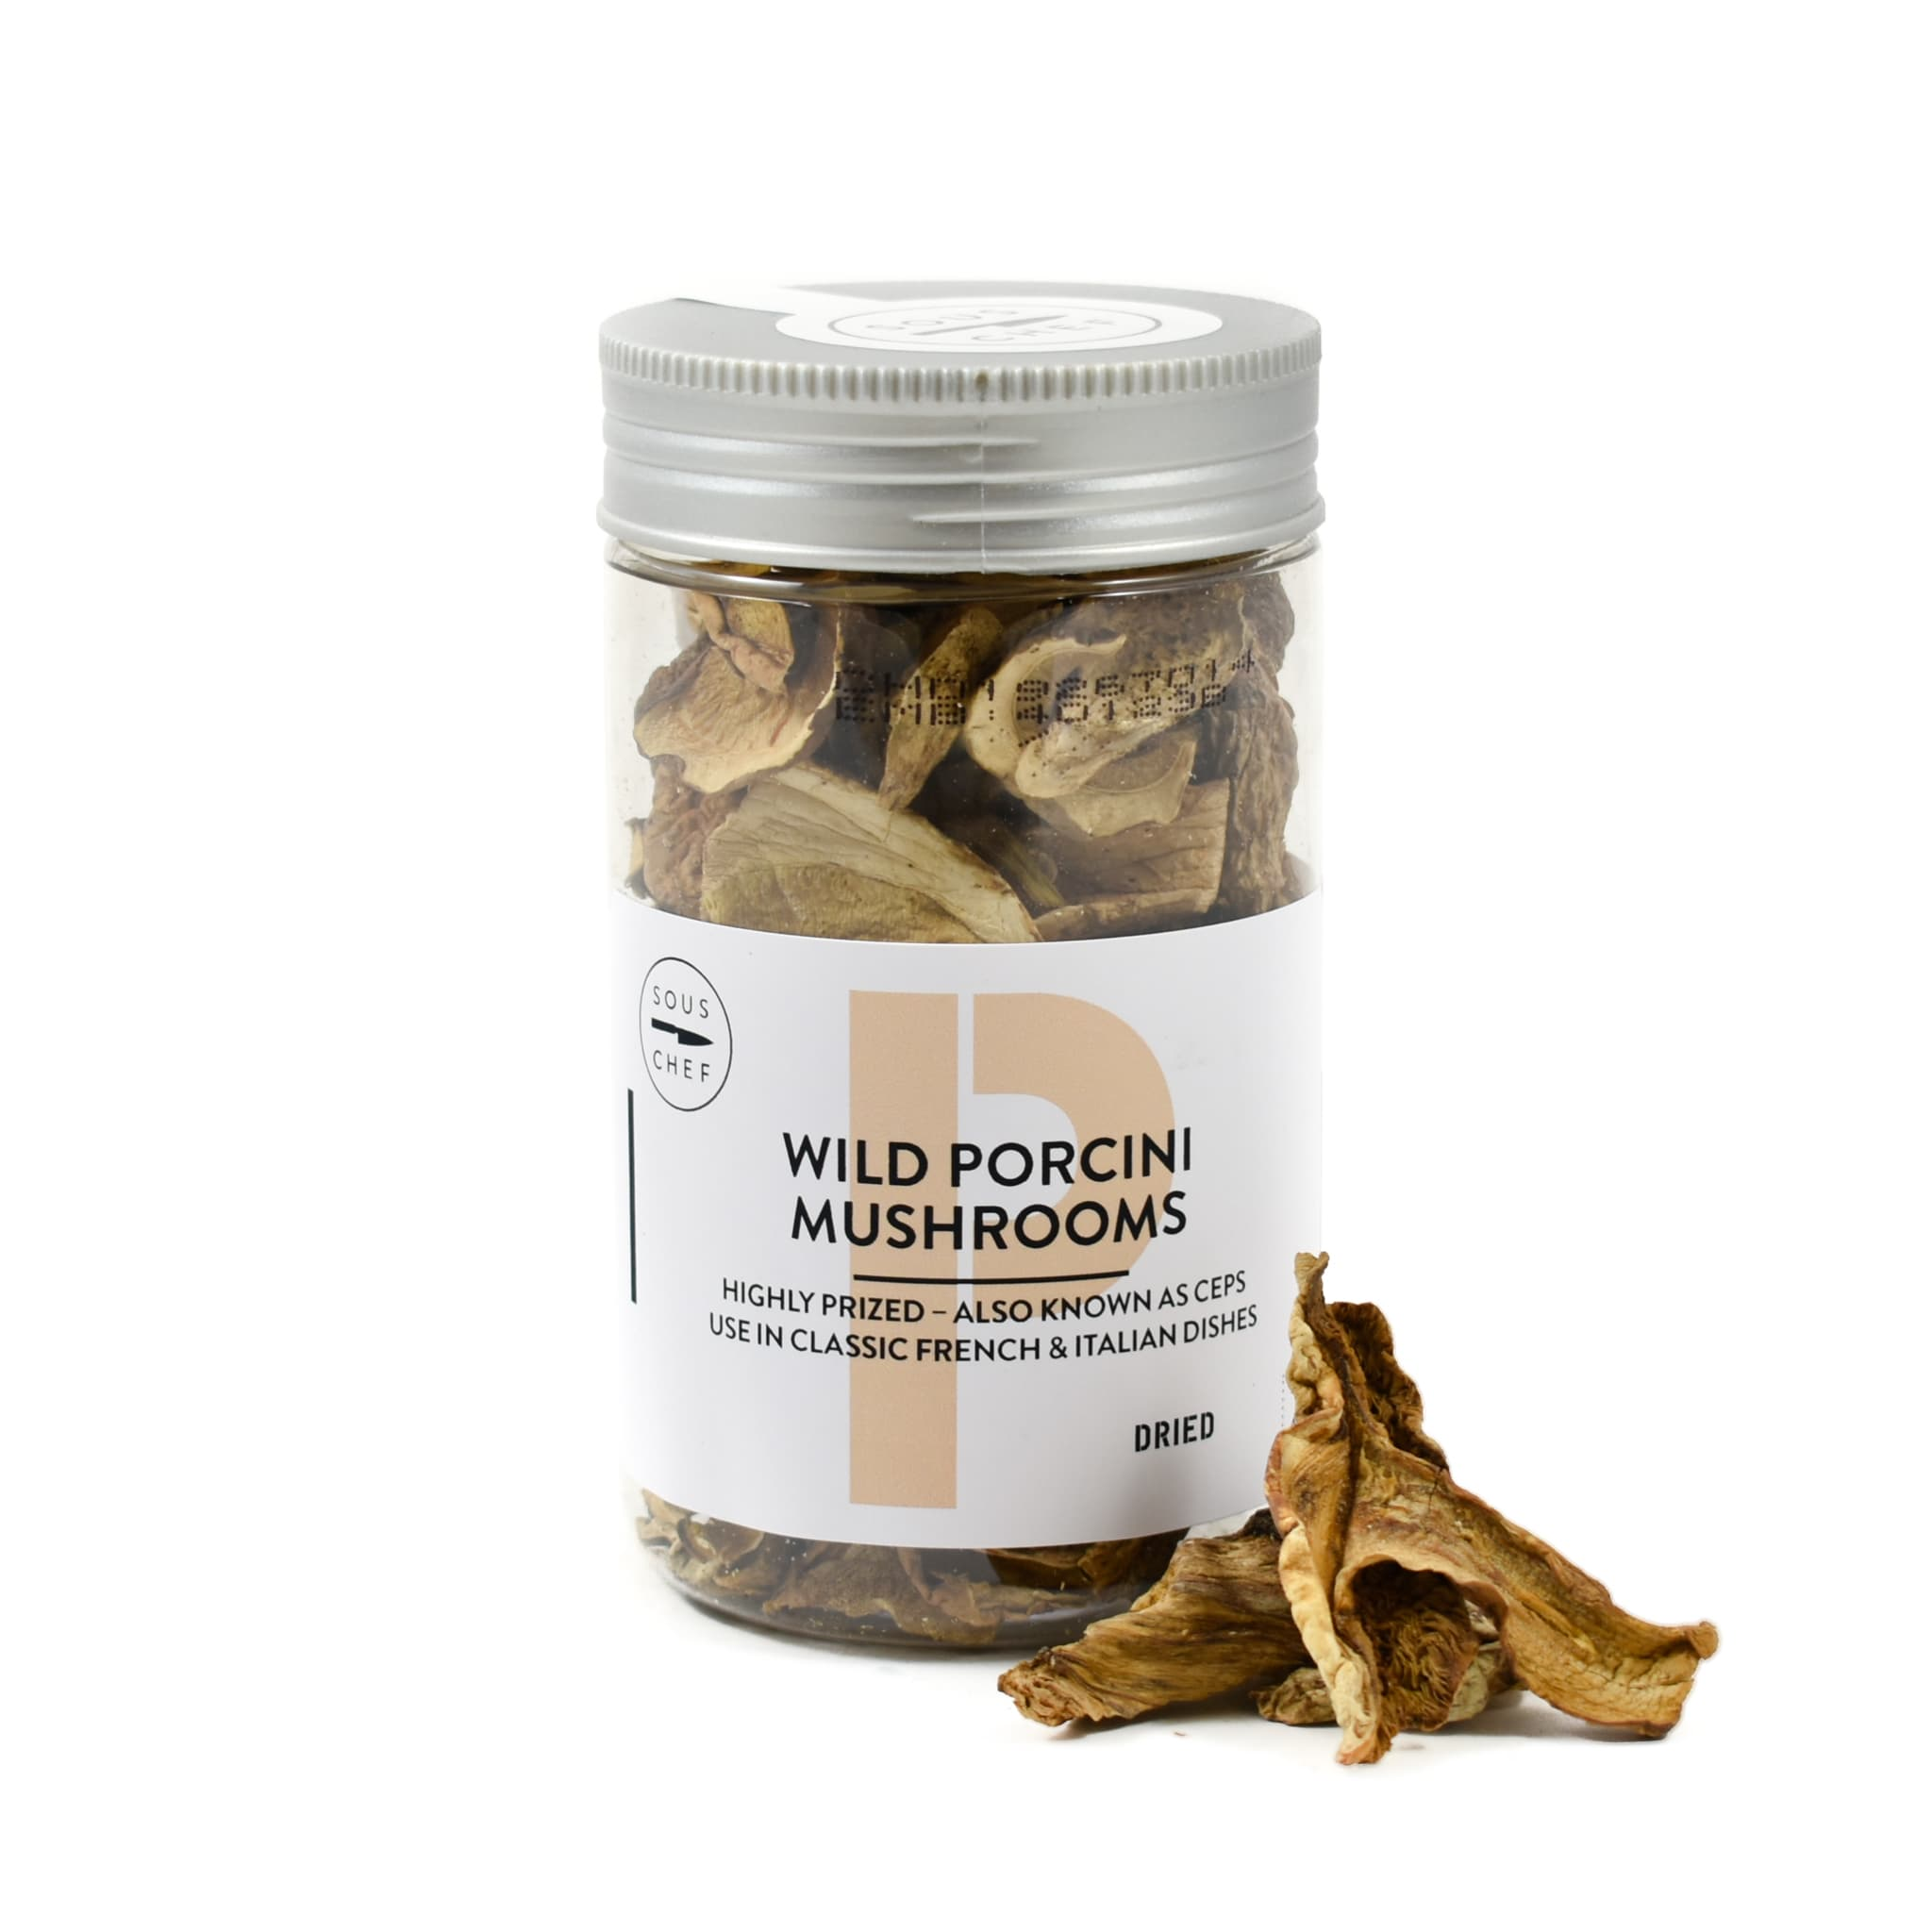 Sous Chef Dried Wild Porcini Mushrooms 40g